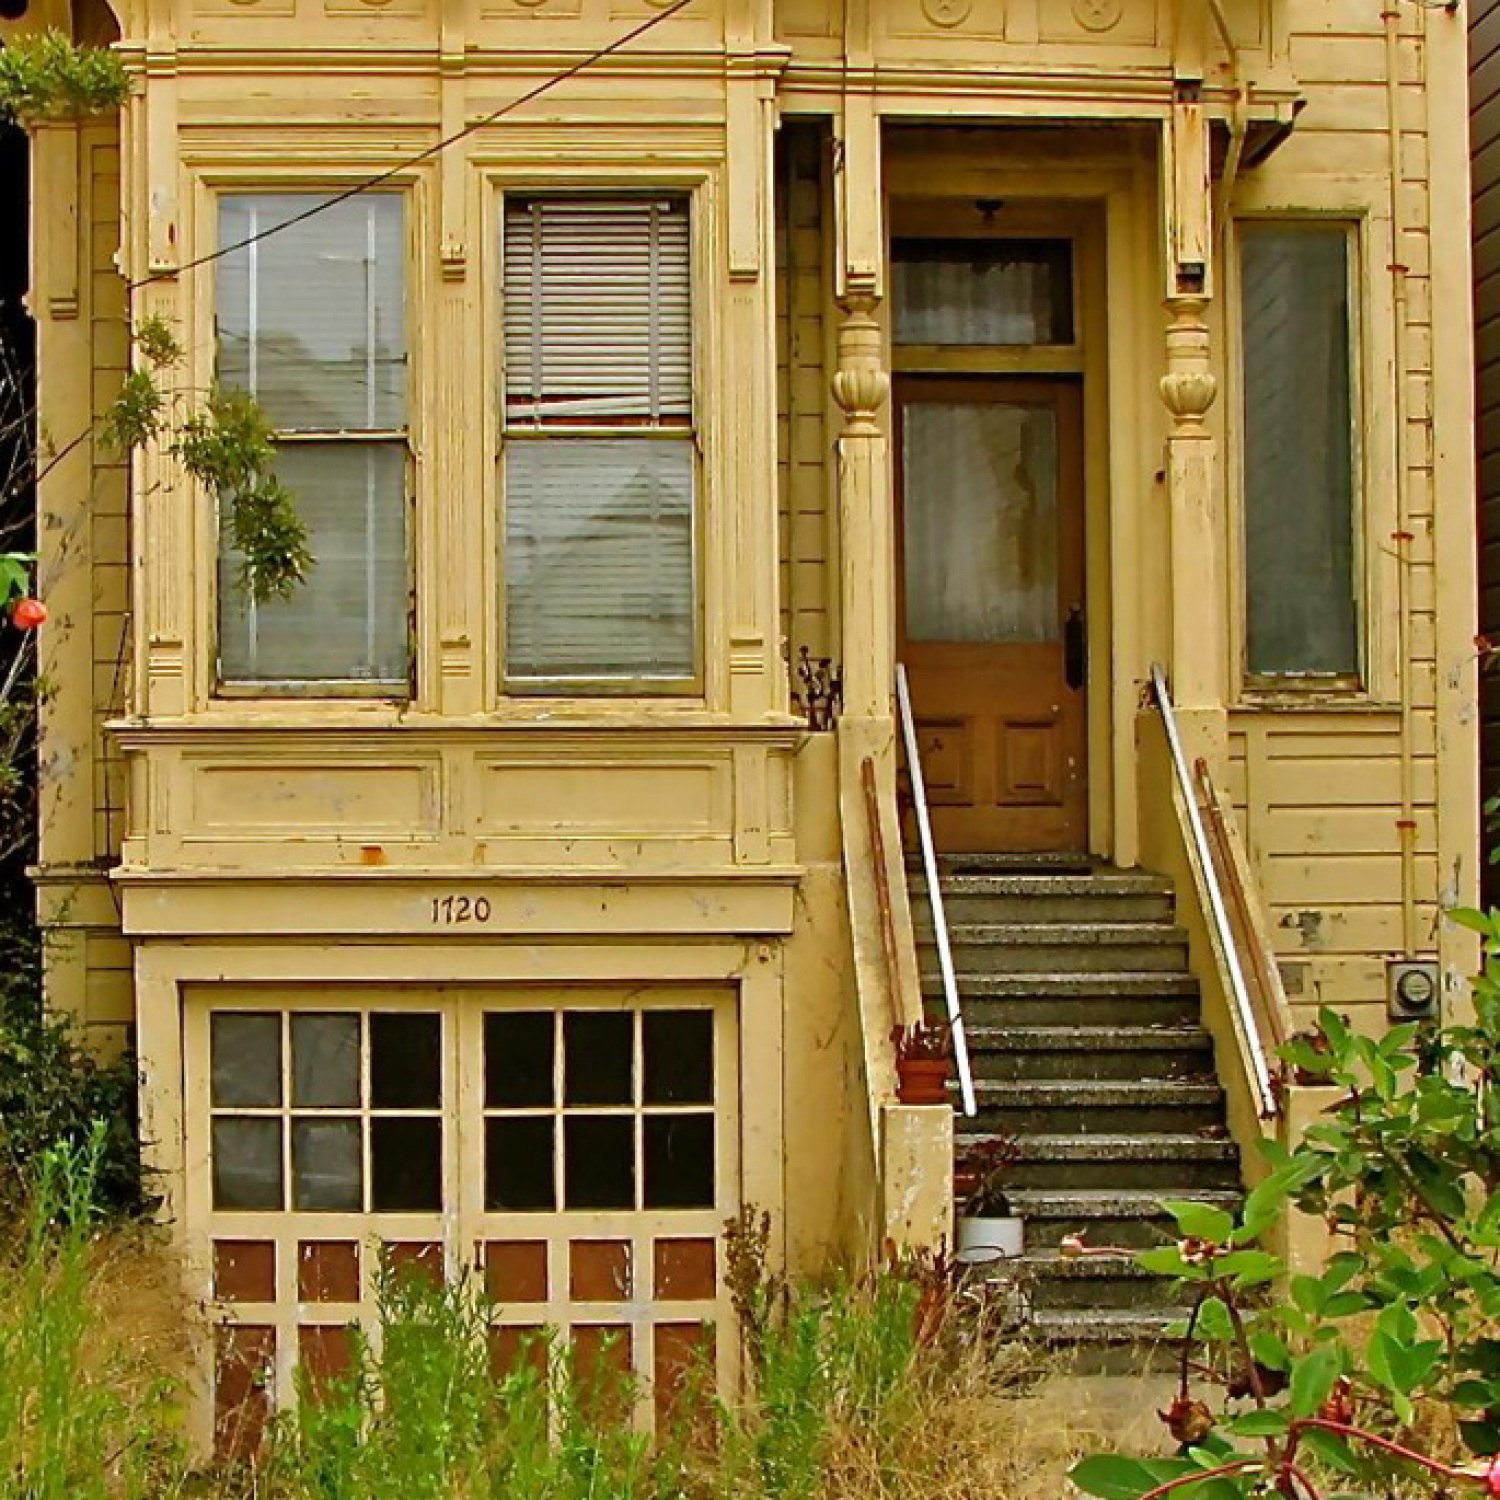 Dilapidated home exterior with overgrown weeds